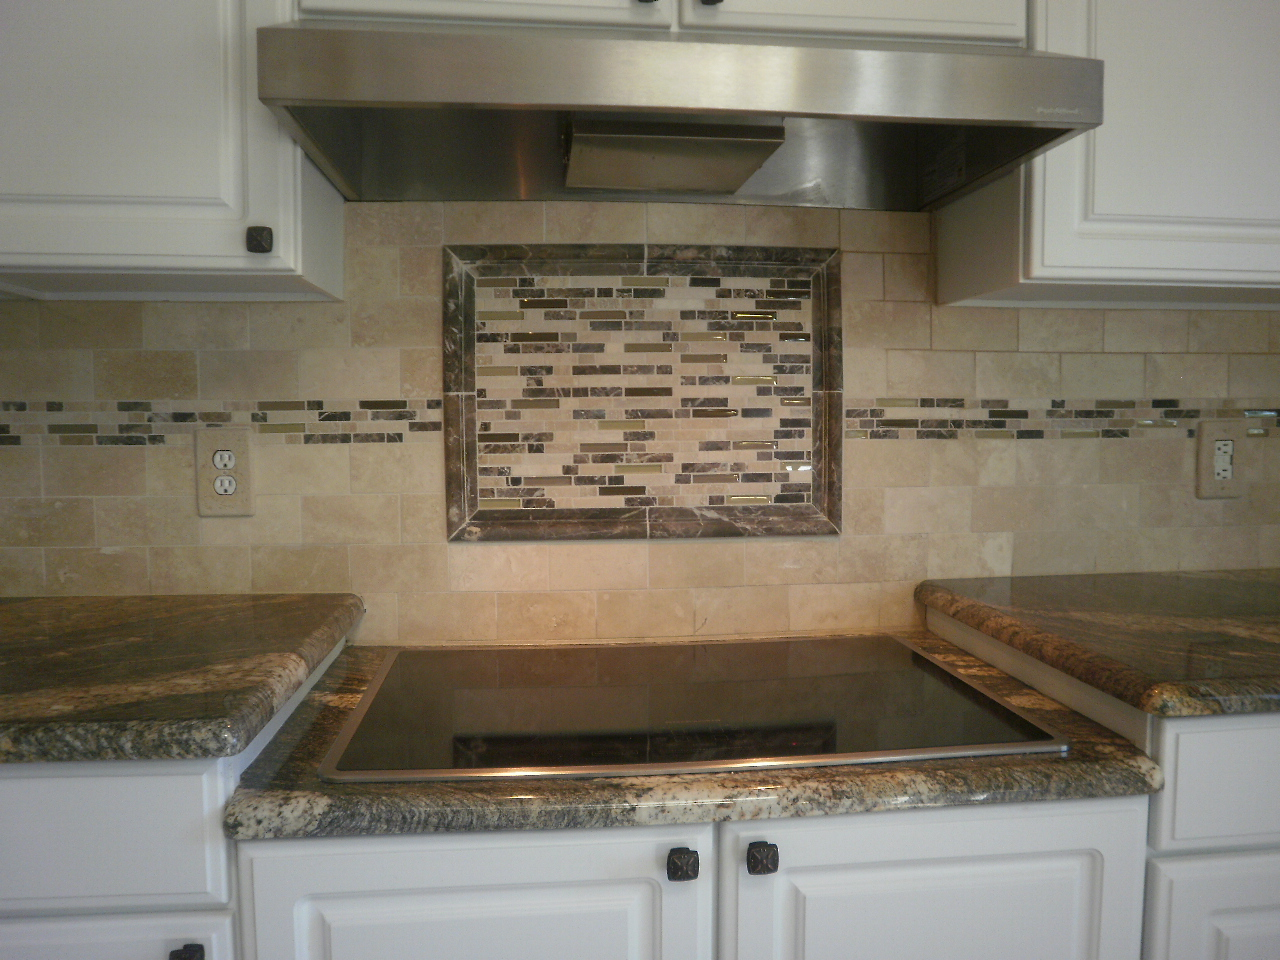 Kitchen backsplash ideas glass tile afreakatheart Tile backsplash kitchen ideas